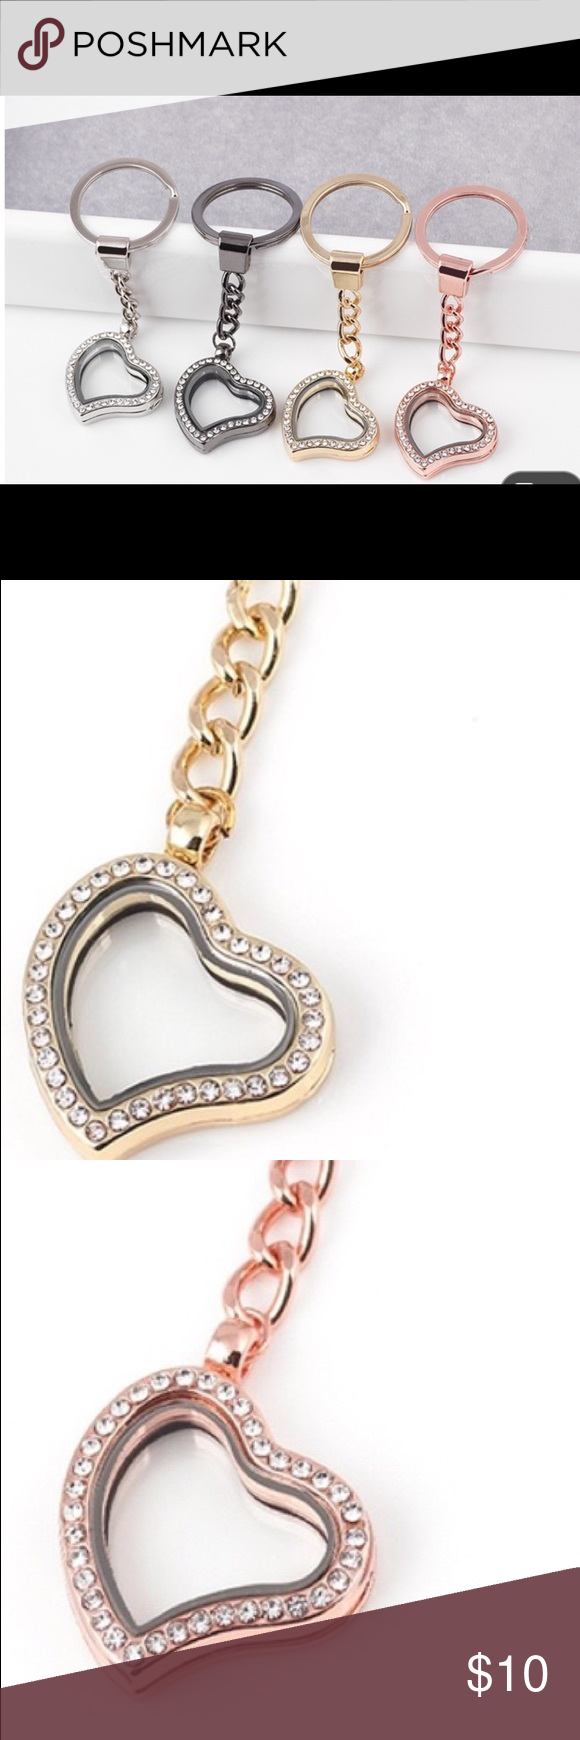 COMING SOON Floating charm heart shaped keychain Rose gold color, silver color, yellow gold color available. Floating charms may be placed inside, stone diamond like stones on the outside, heart shaped. Great stocking stuffers, an awesome decorative item for the outside of a gift. Other